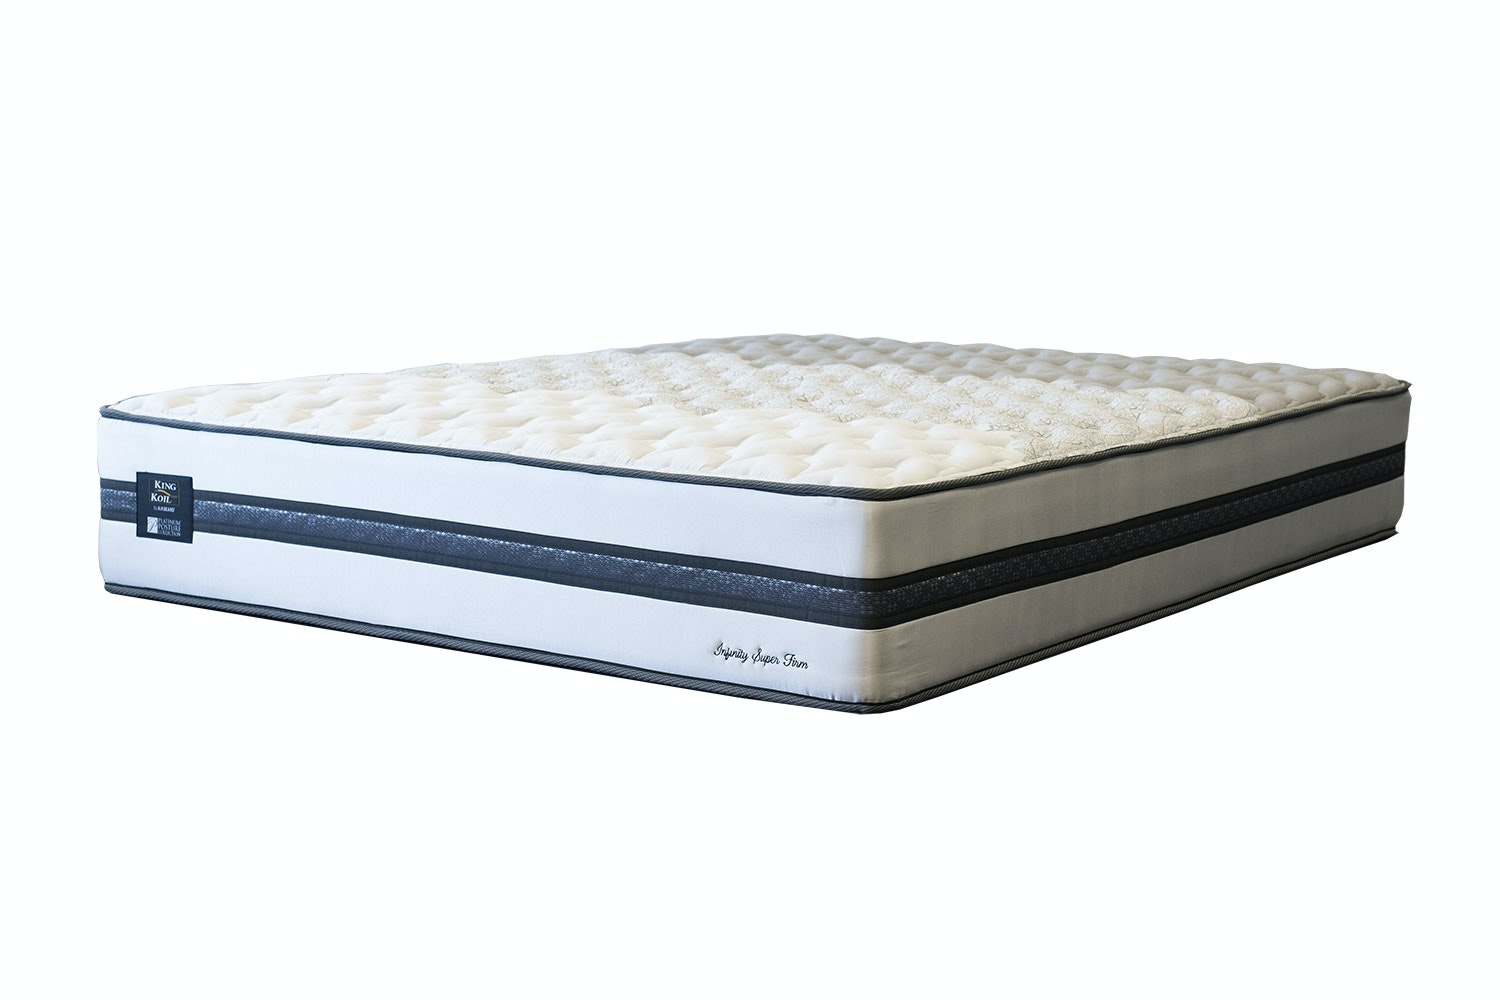 Infinity Super Firm Californian King Mattress by King Koil